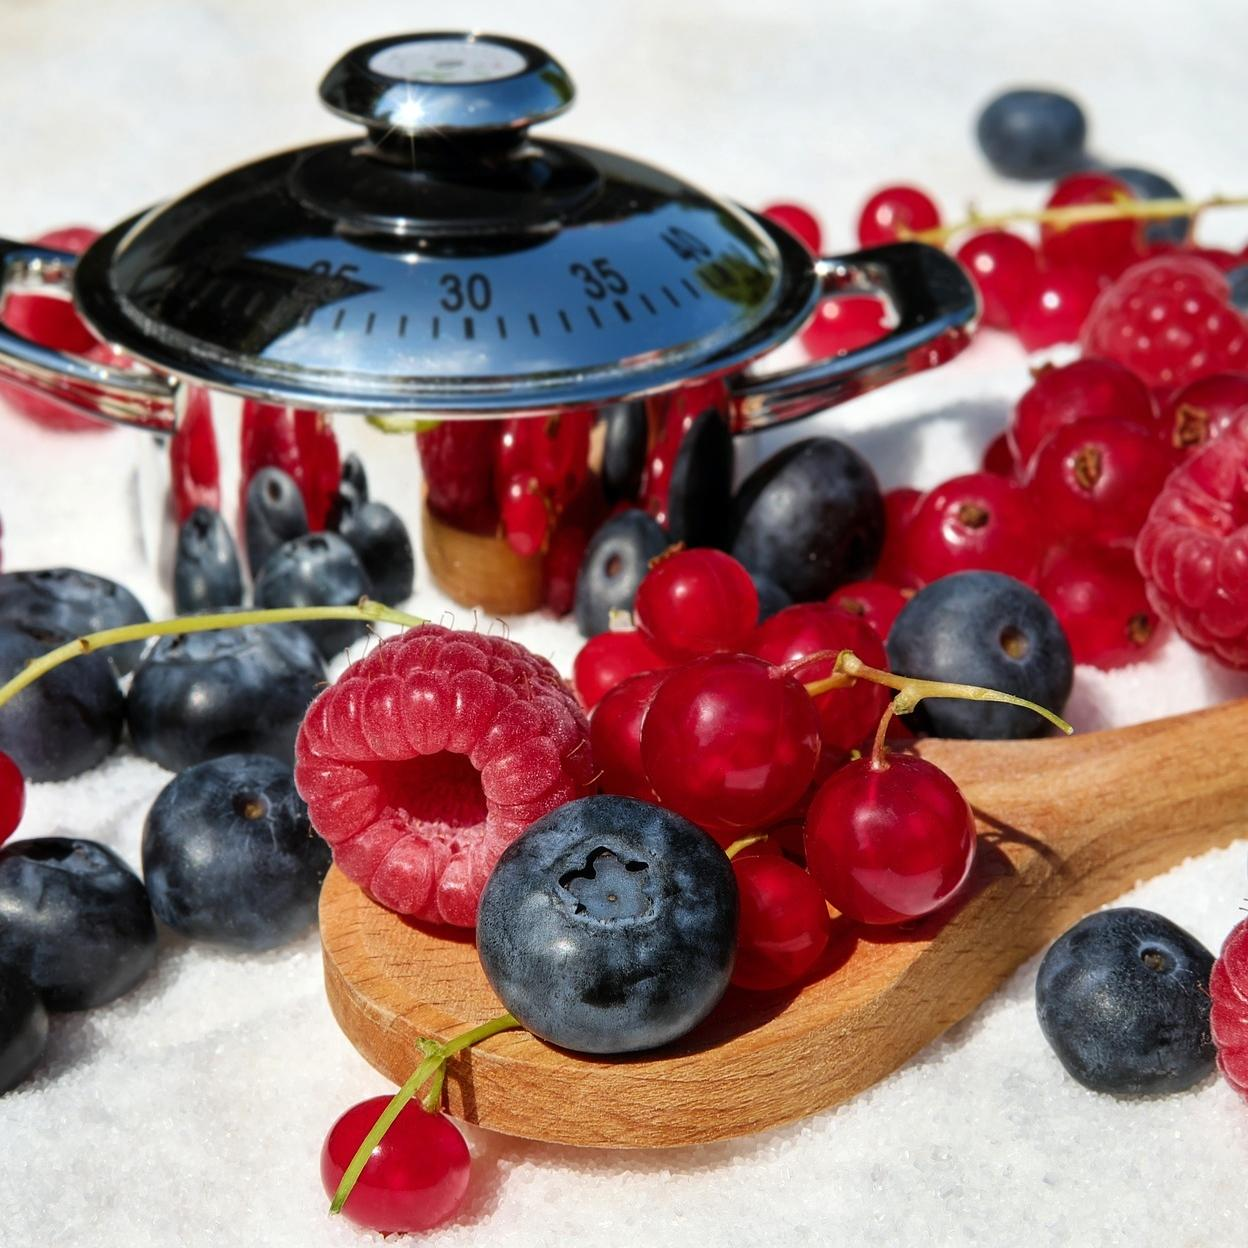 A display of a jam pan with berries